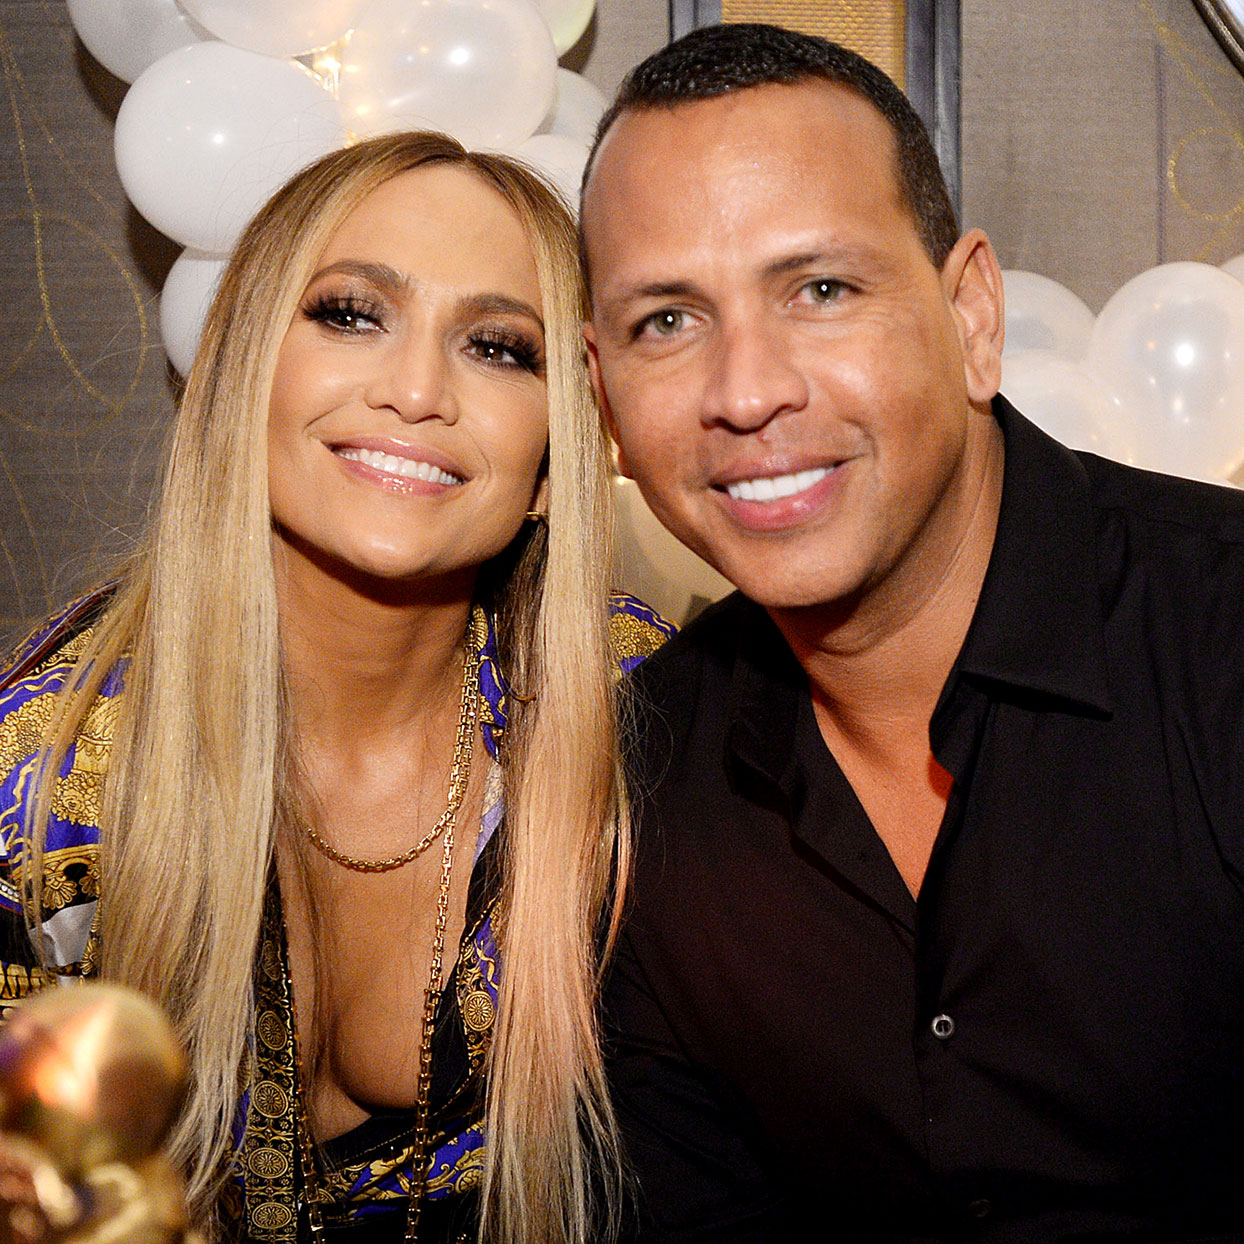 J. Lo and Alex Rodriguez smiling